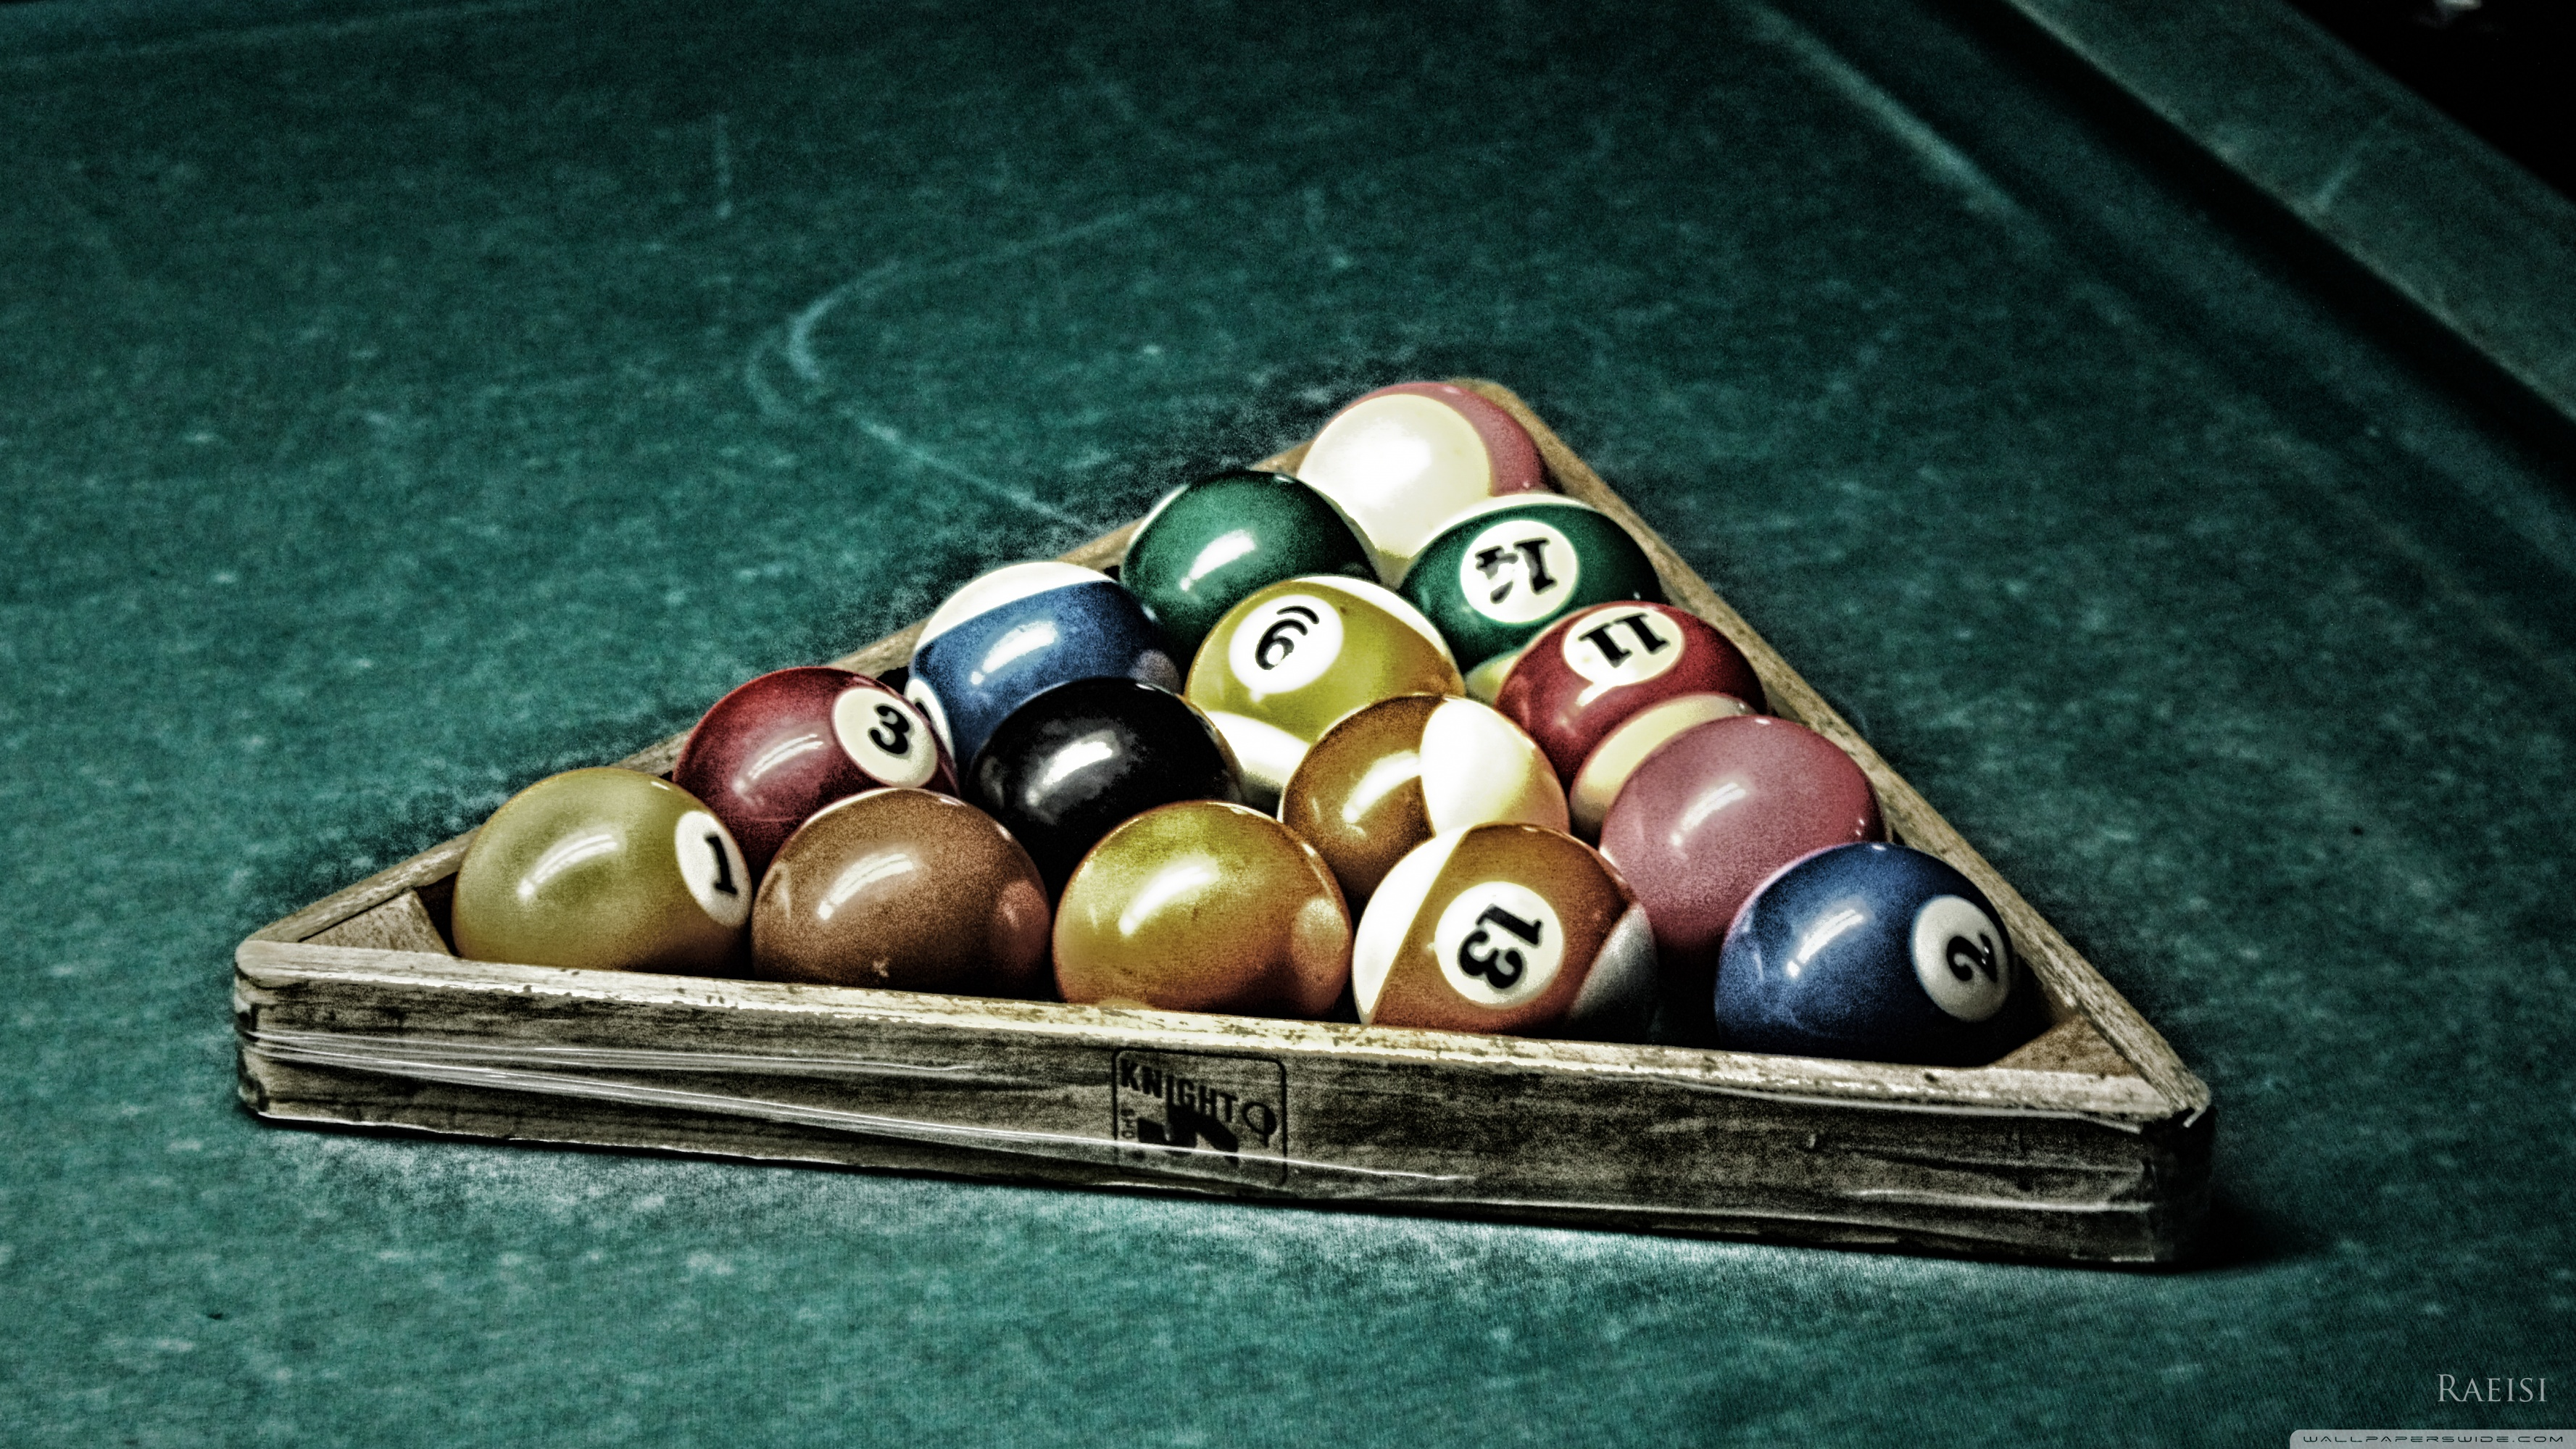 Billiard 4K HD Desktop Wallpaper for 4K Ultra HD TV Wide 3554x1999